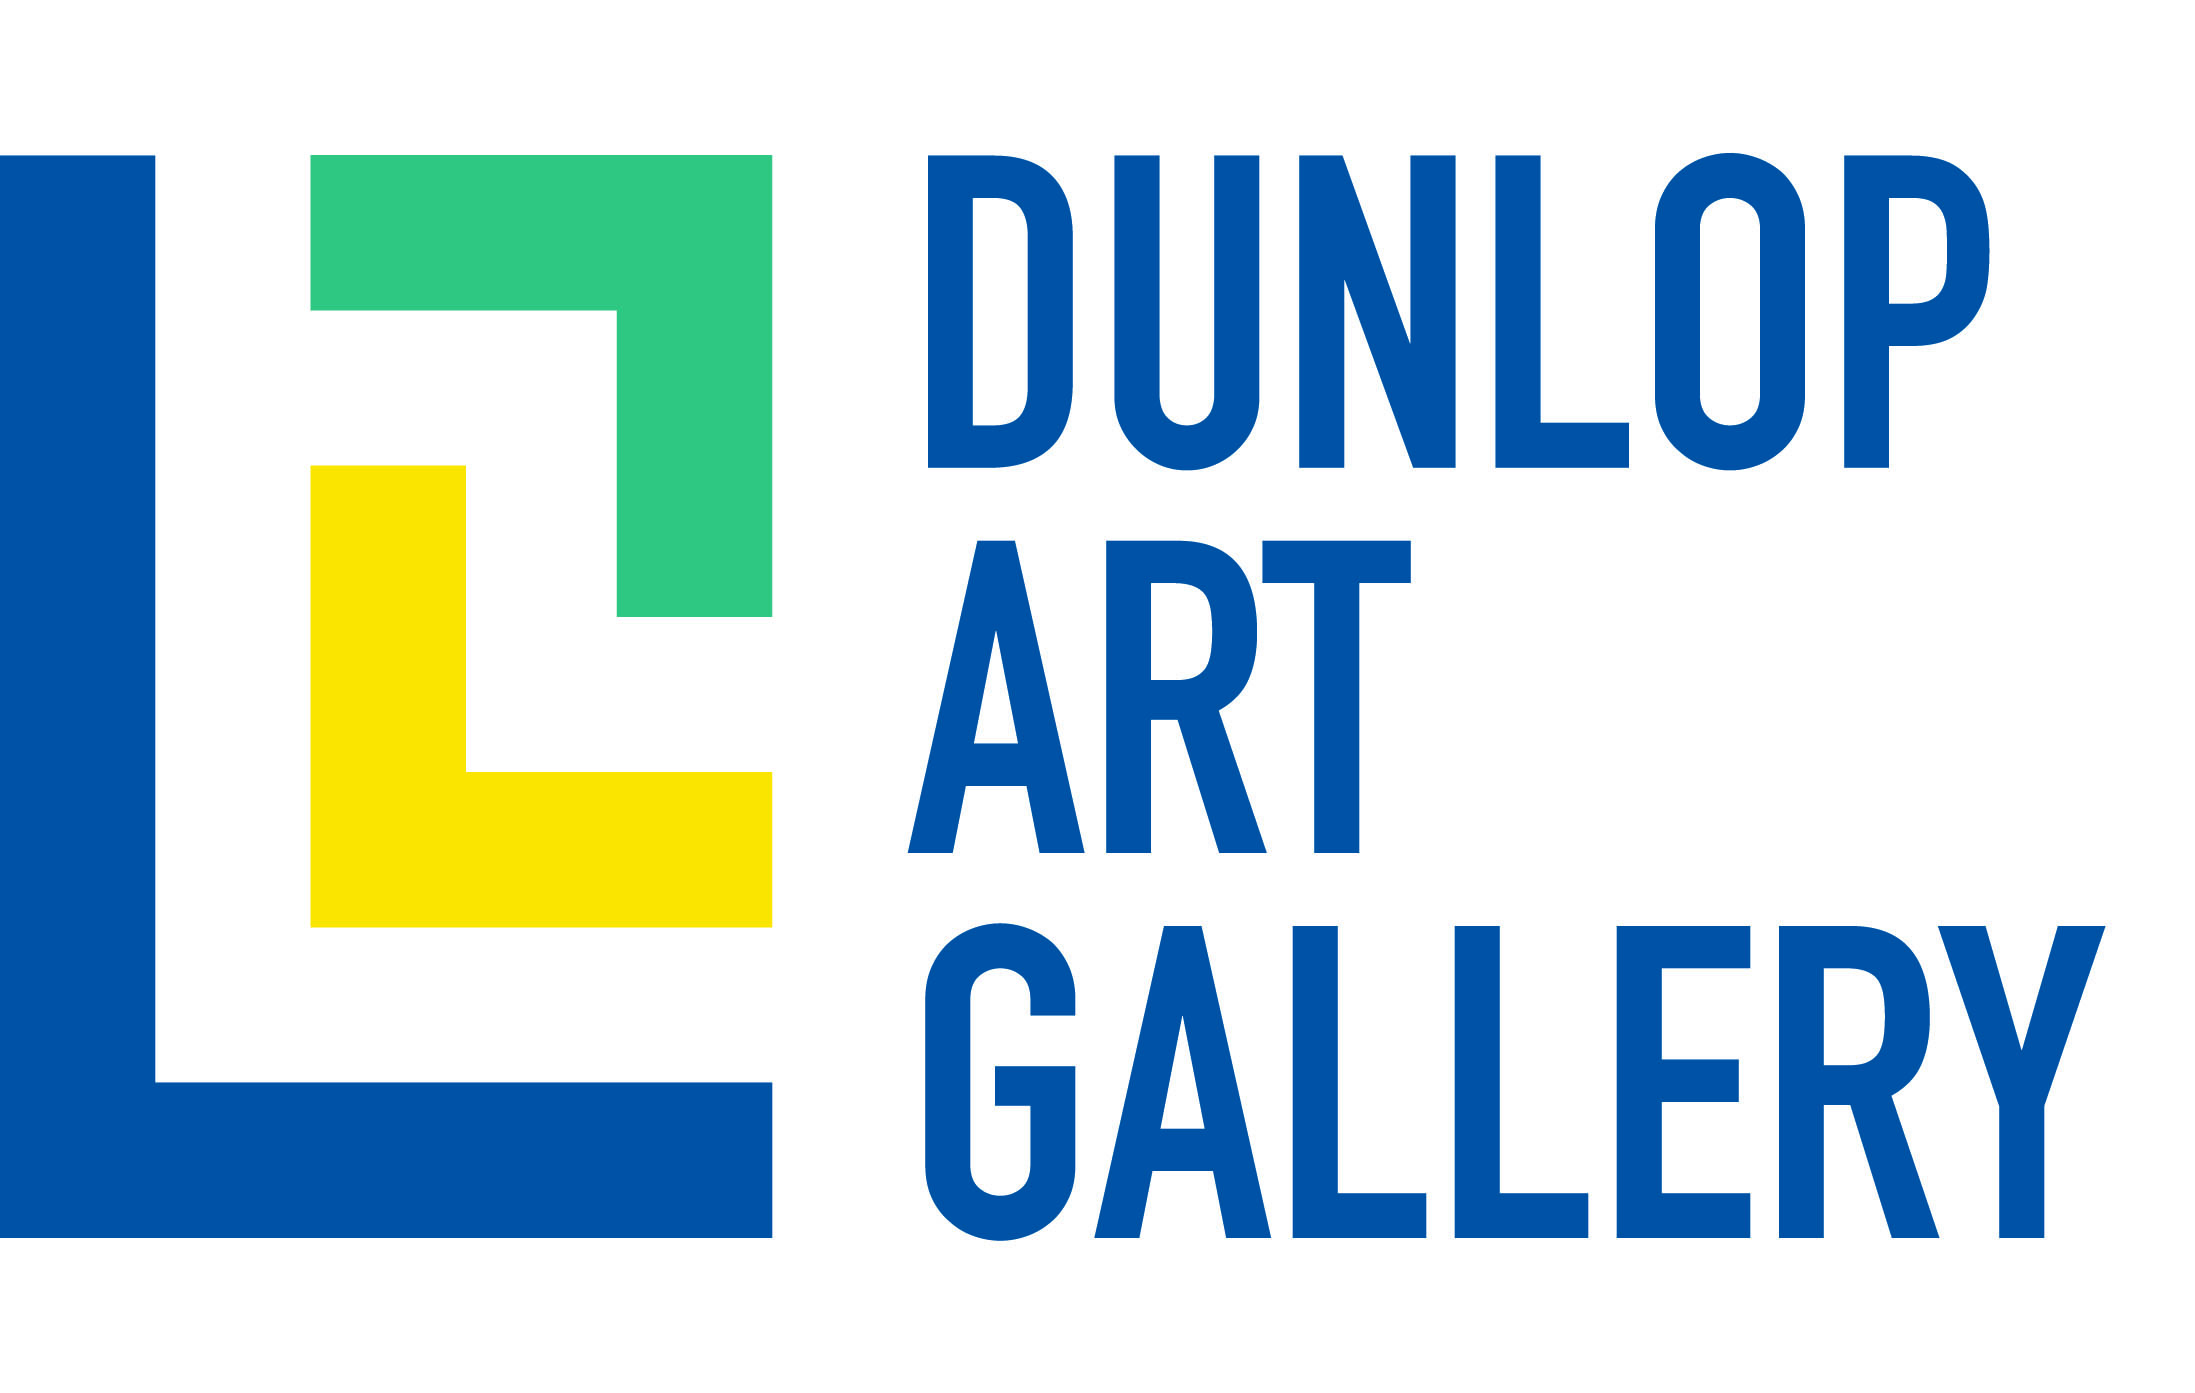 RPL's Dunlop Art Gallery Celebrates Métis and Franco-Saskois Cultures with New Murals - Image 1